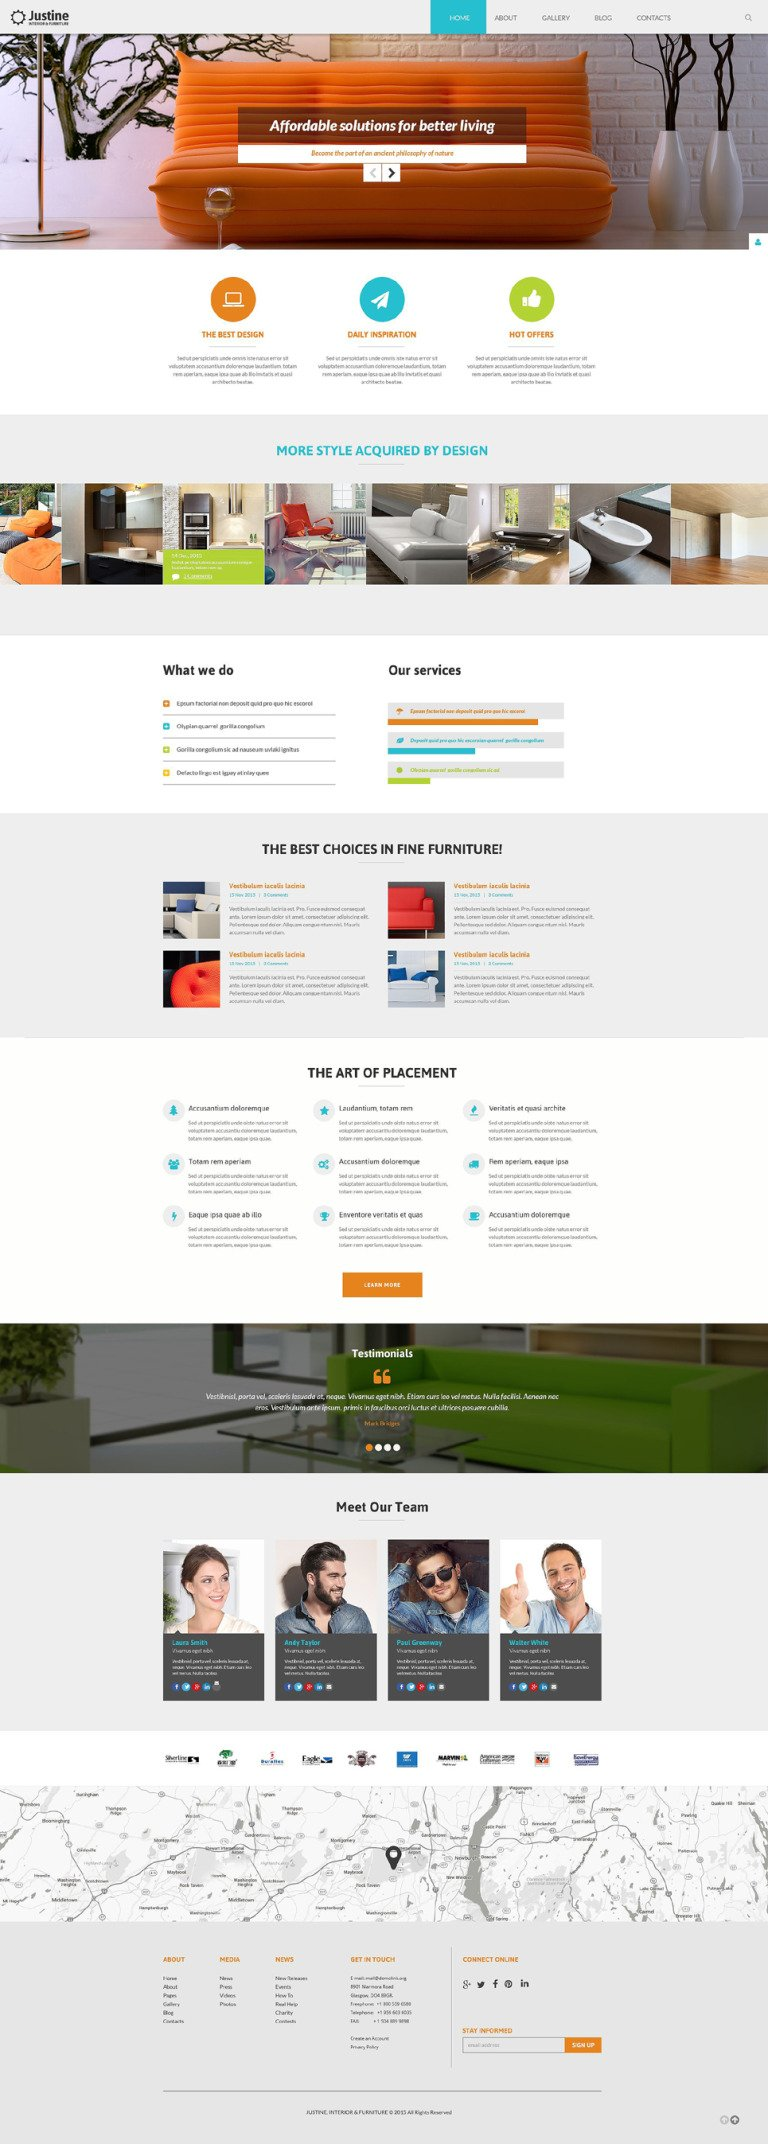 Justine Joomla Template New Screenshots BIG